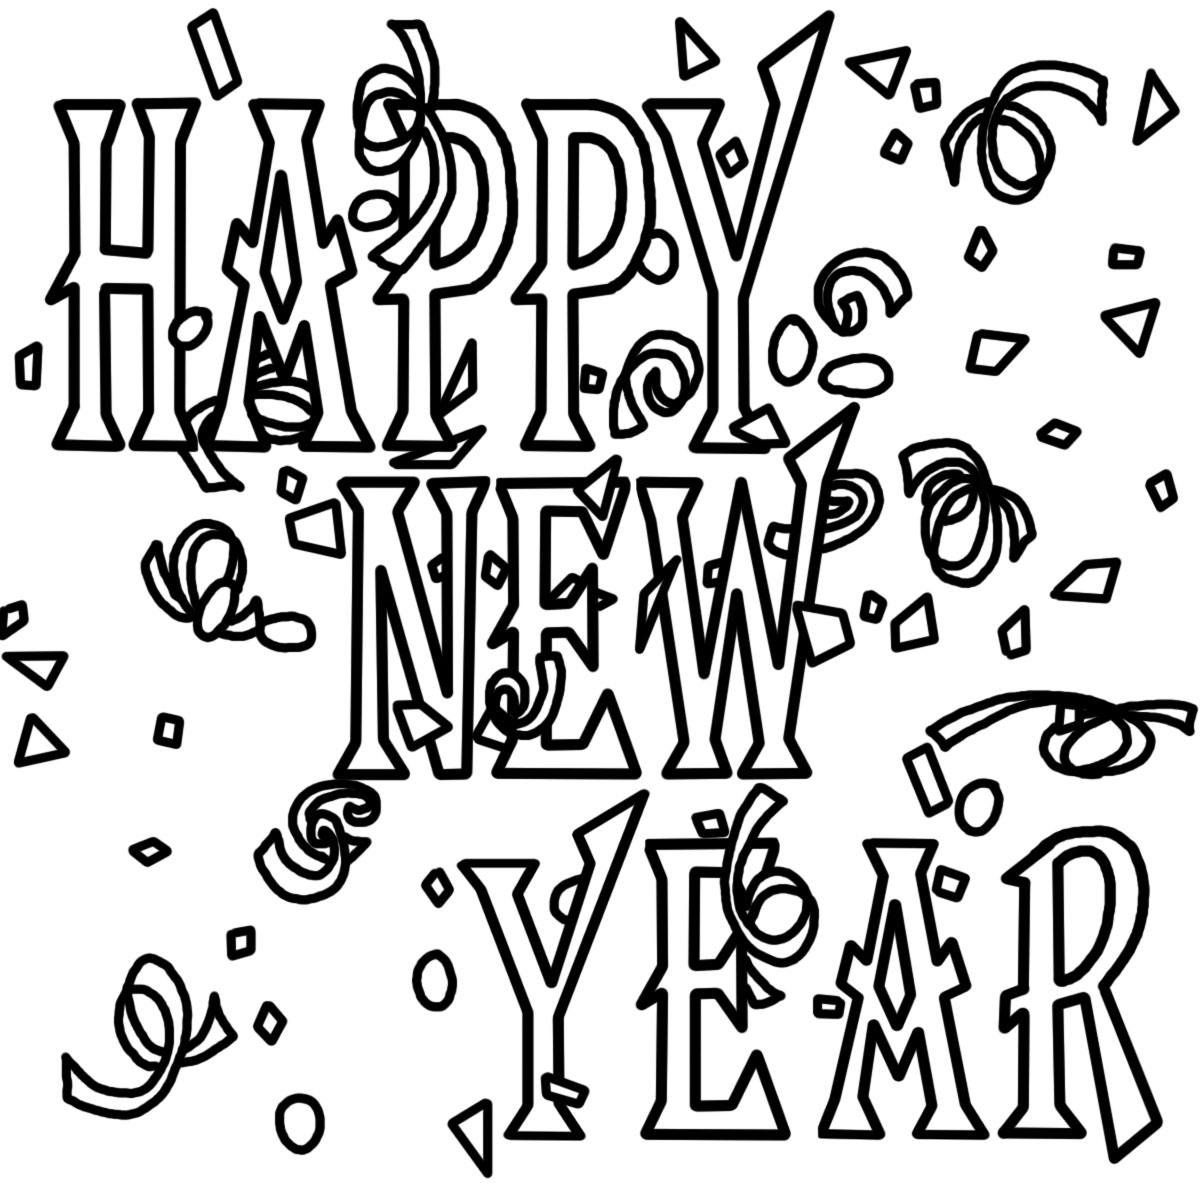 new years eve coloring pages - photo#19